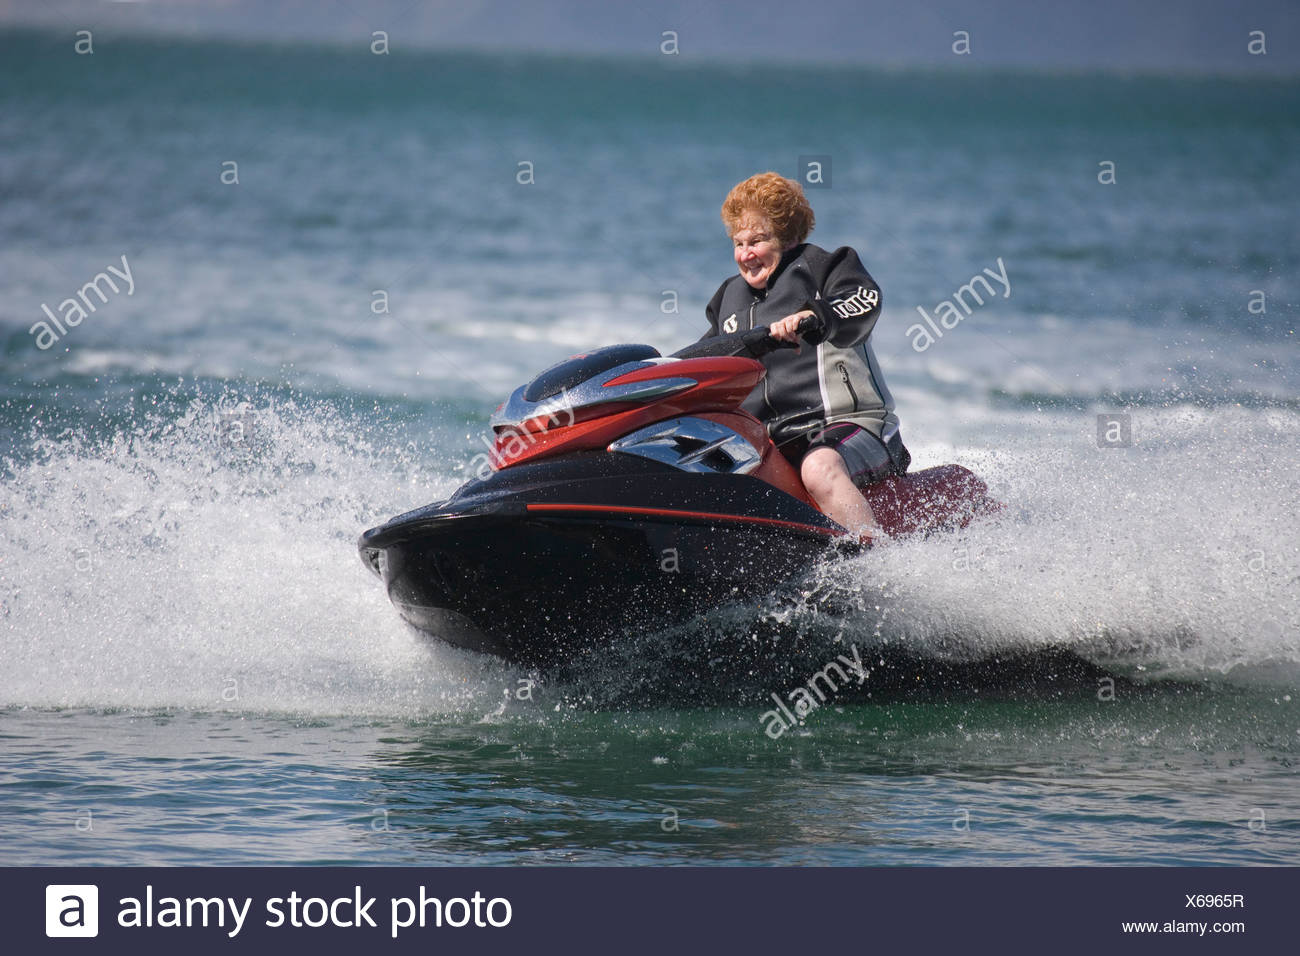 Jet Ski Jet Skis Jet Skiing Jetski Jetskiing Fun Speed Fast Water Human Person Thrill Excitement Adrenalin Stock Photo Alamy